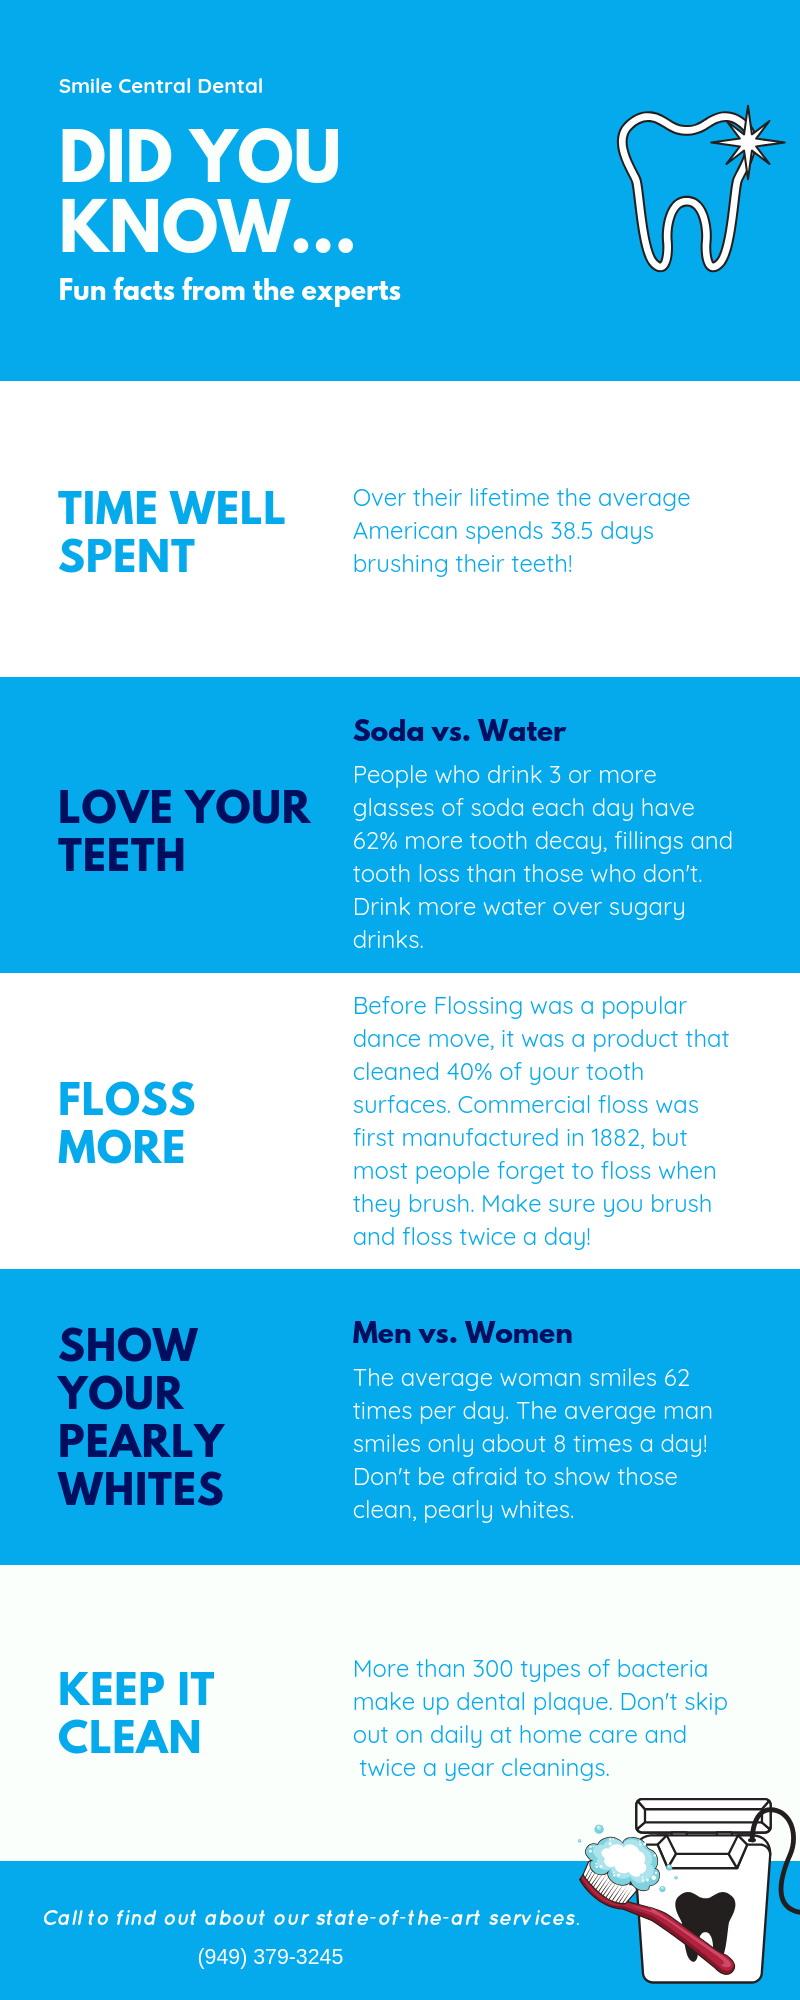 Fun Dental Facts From The Experts